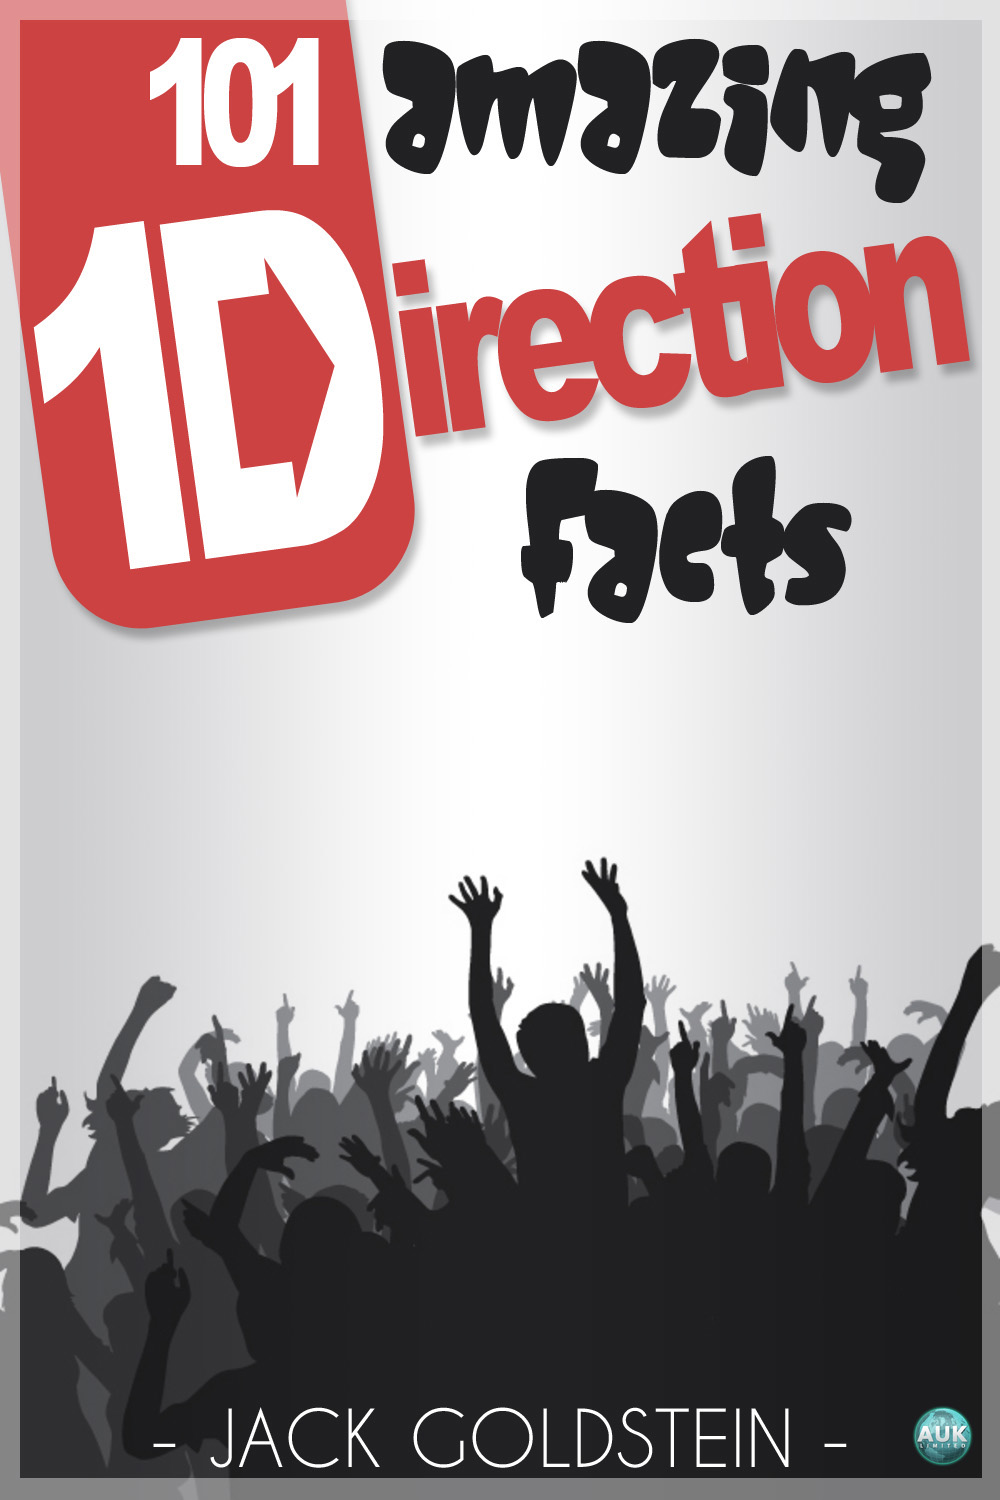 101 Amazing One Direction Facts By: Jack Goldstein